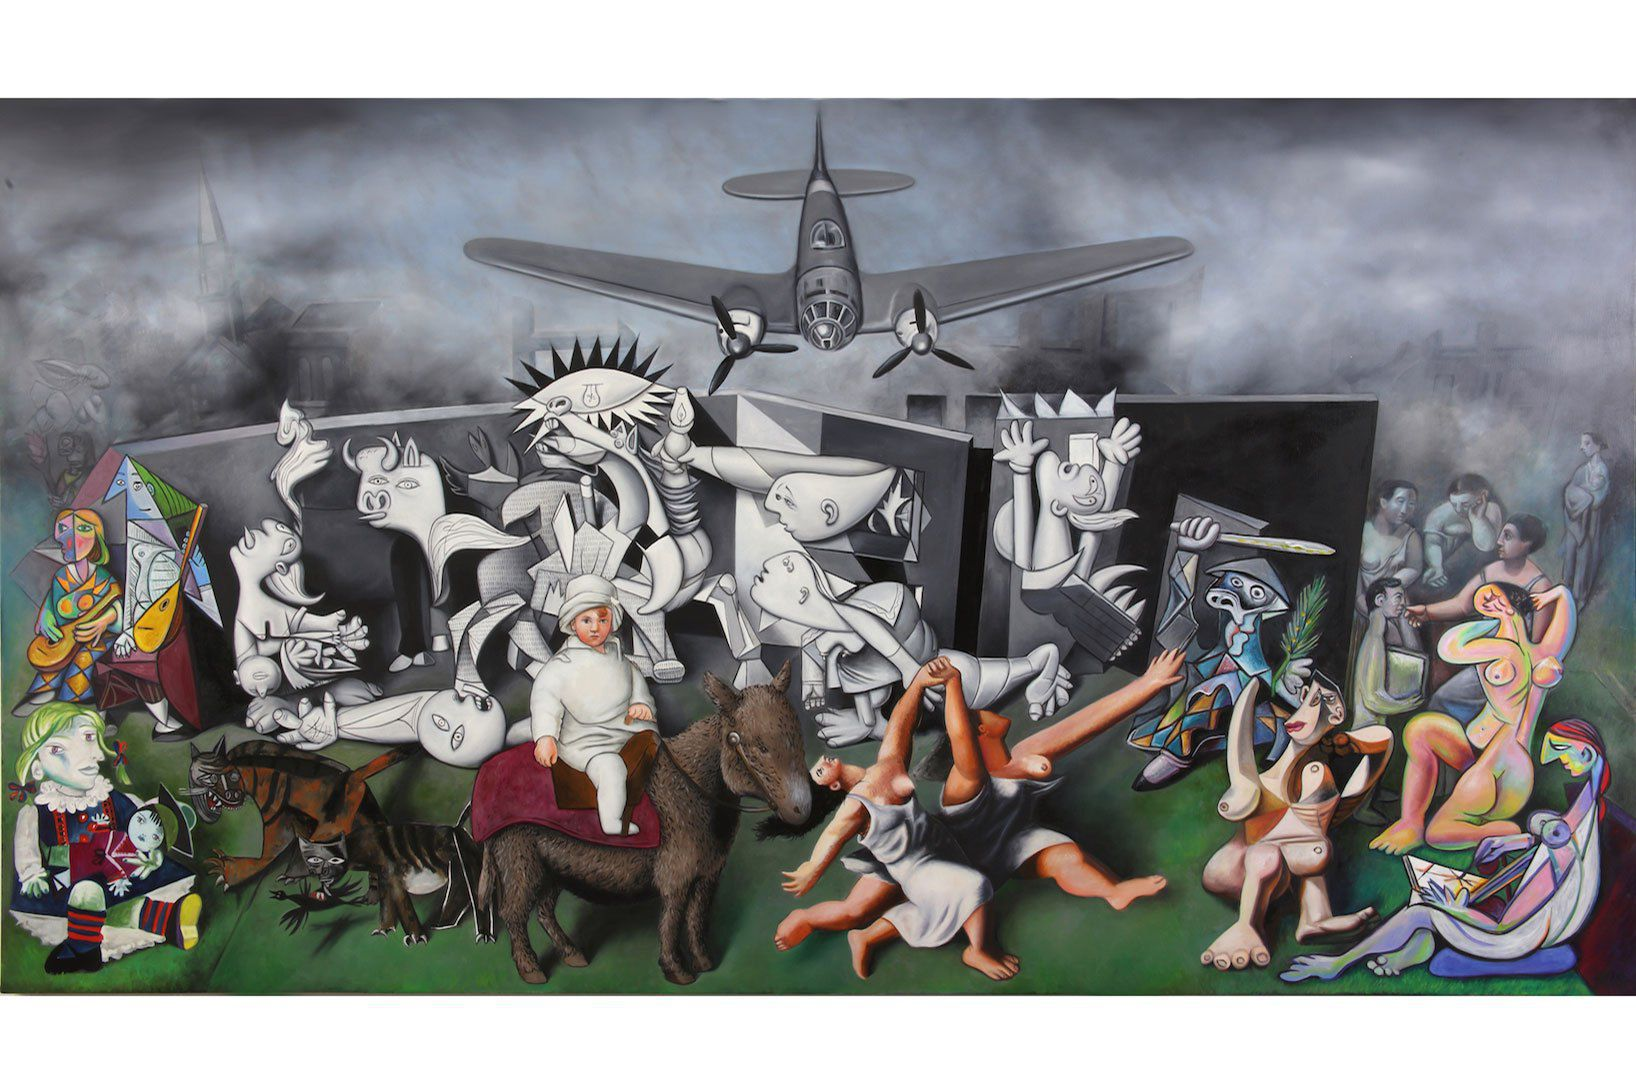 ron-english-guernica-allouche-gallery-4